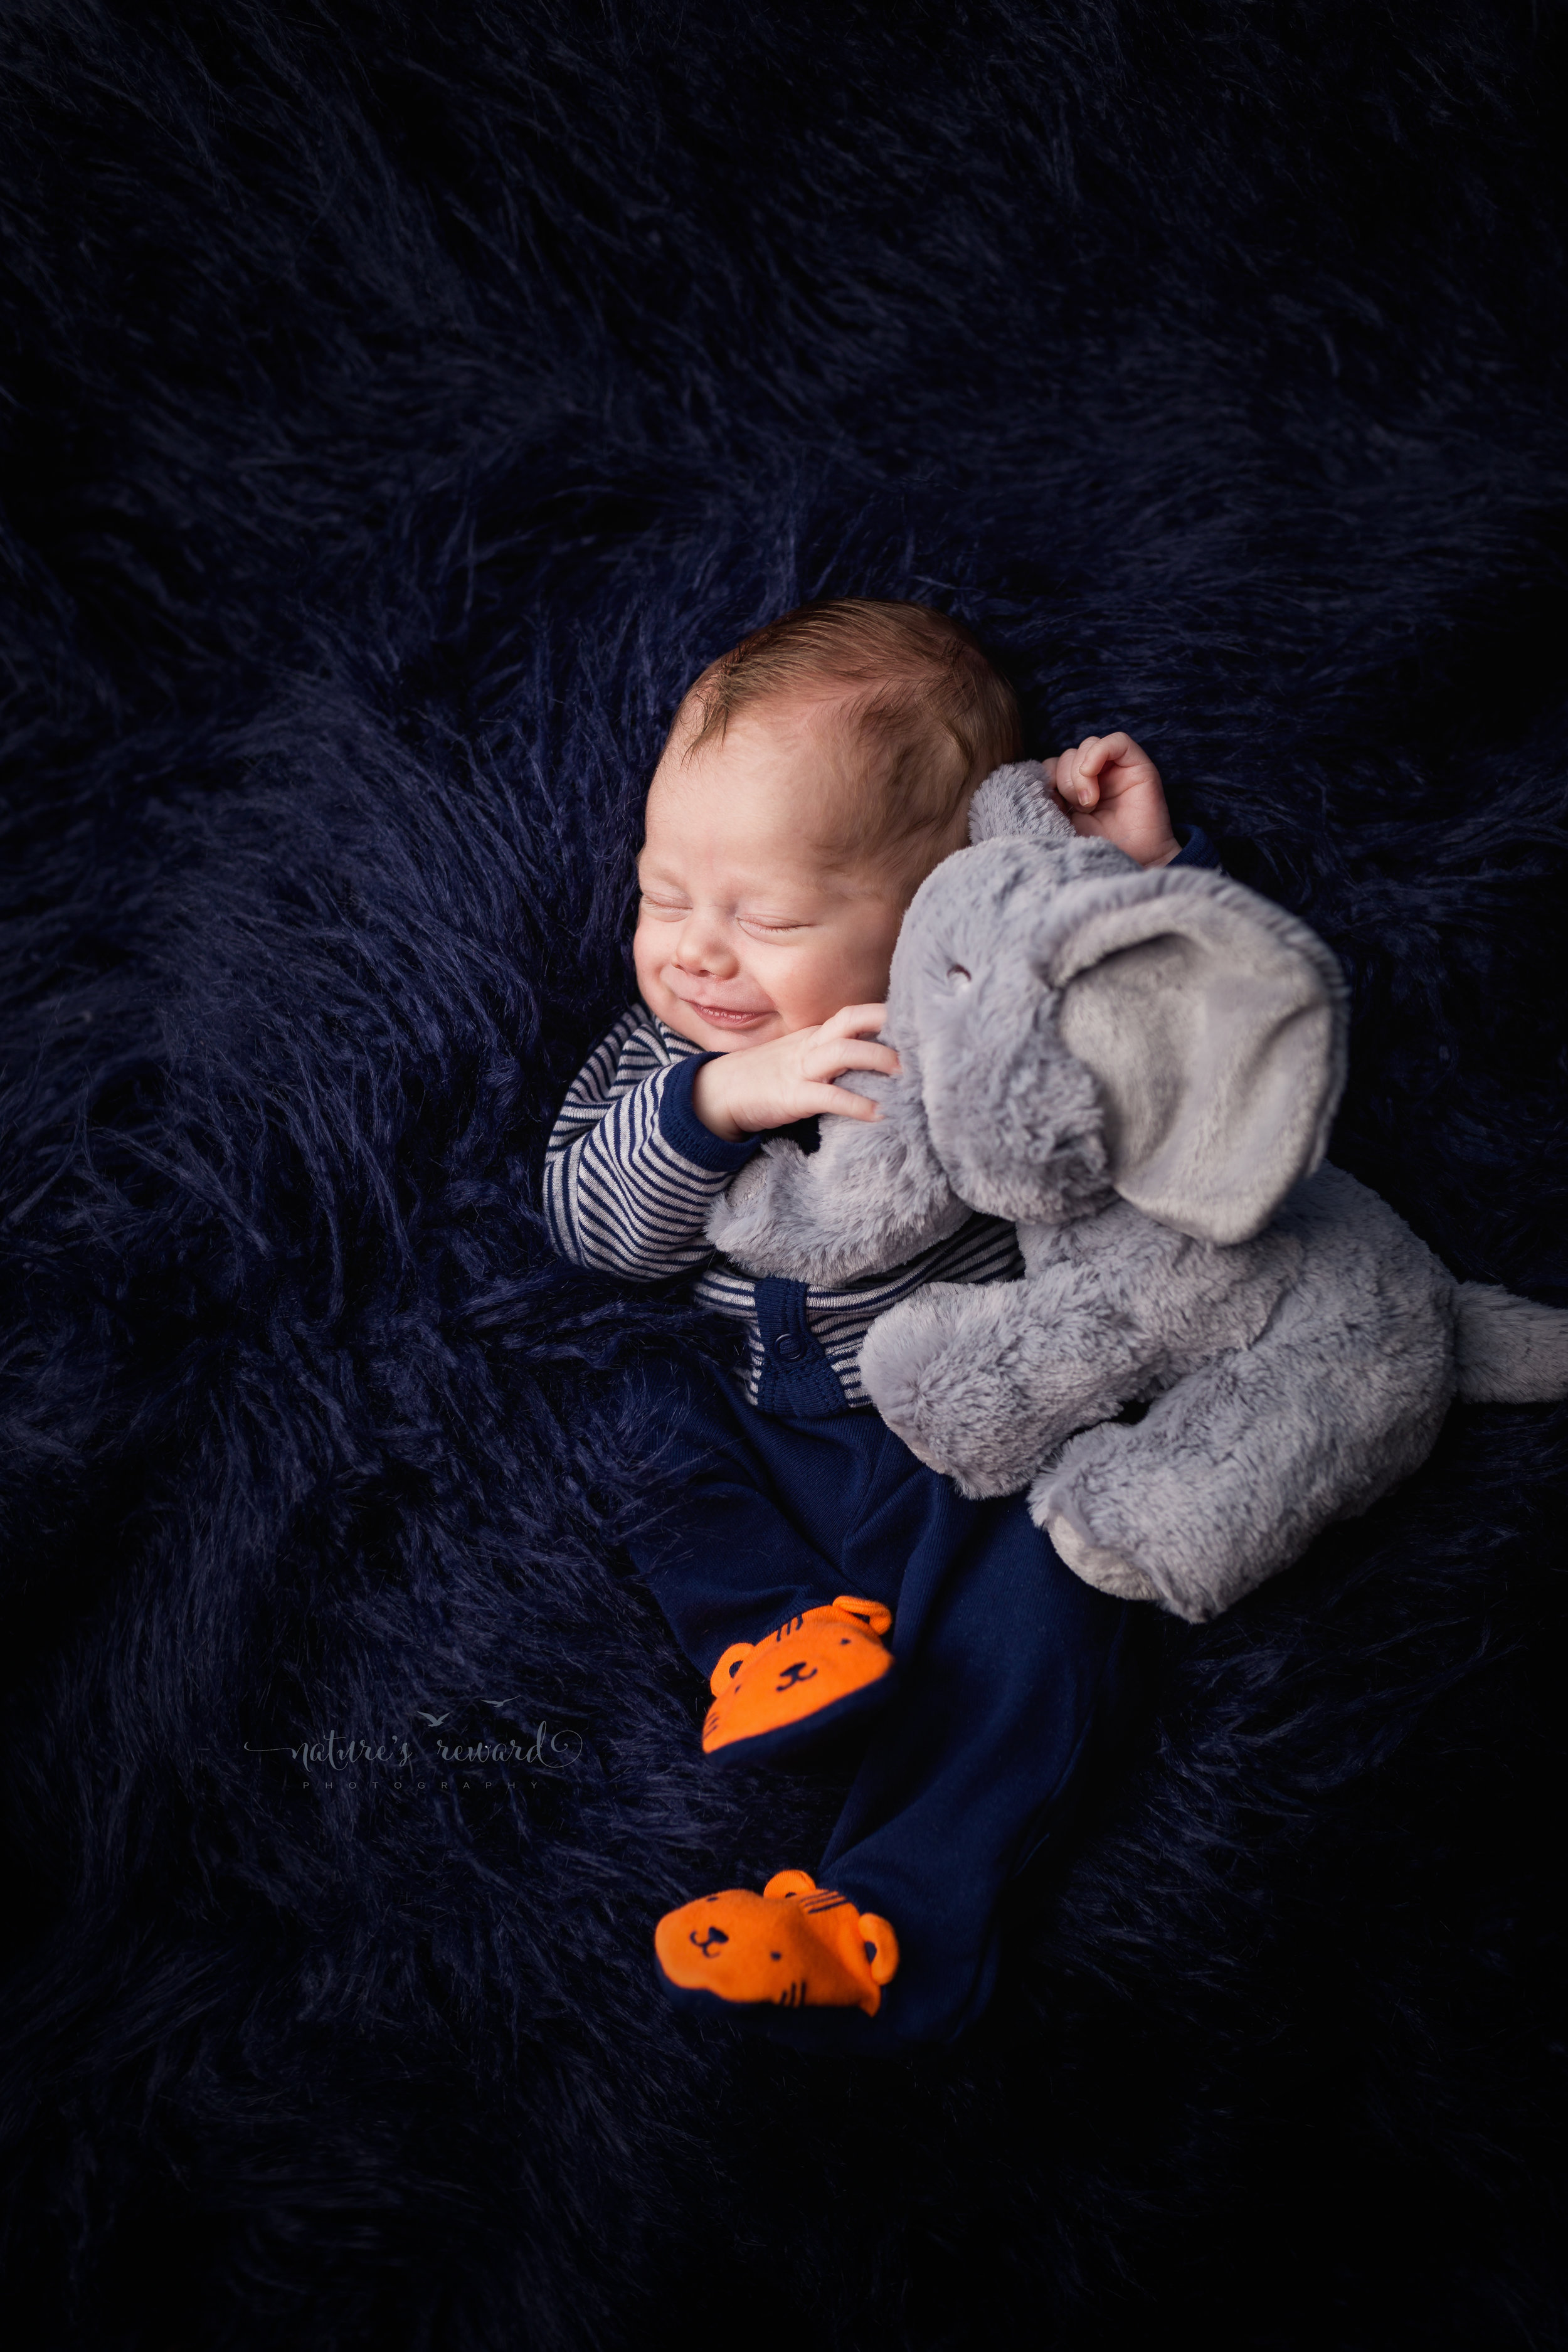 Newborn Baby boy holding his elephant from home while wearing an outfit Brough by his parents in a field of blue fur while smiling by Southern California newborn and family photographer Nature's Reward Photography